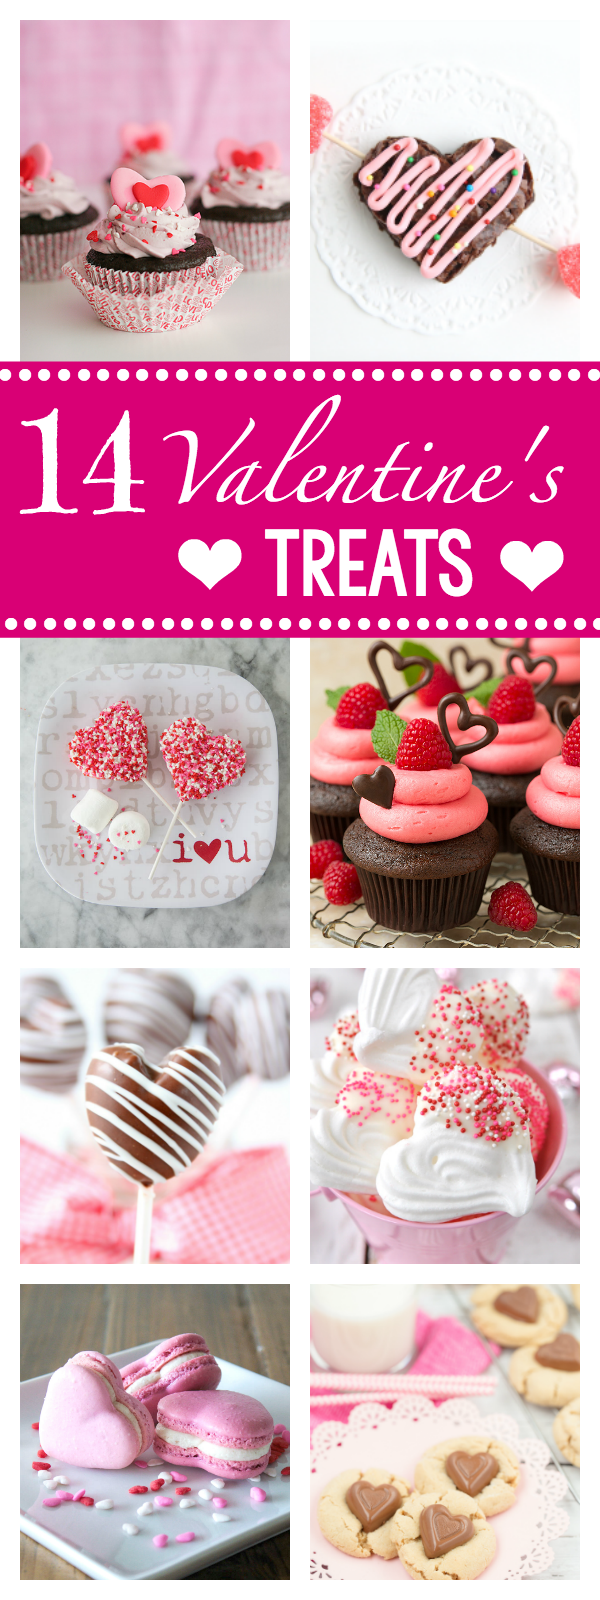 14 Fun Valentine's Treat Ideas